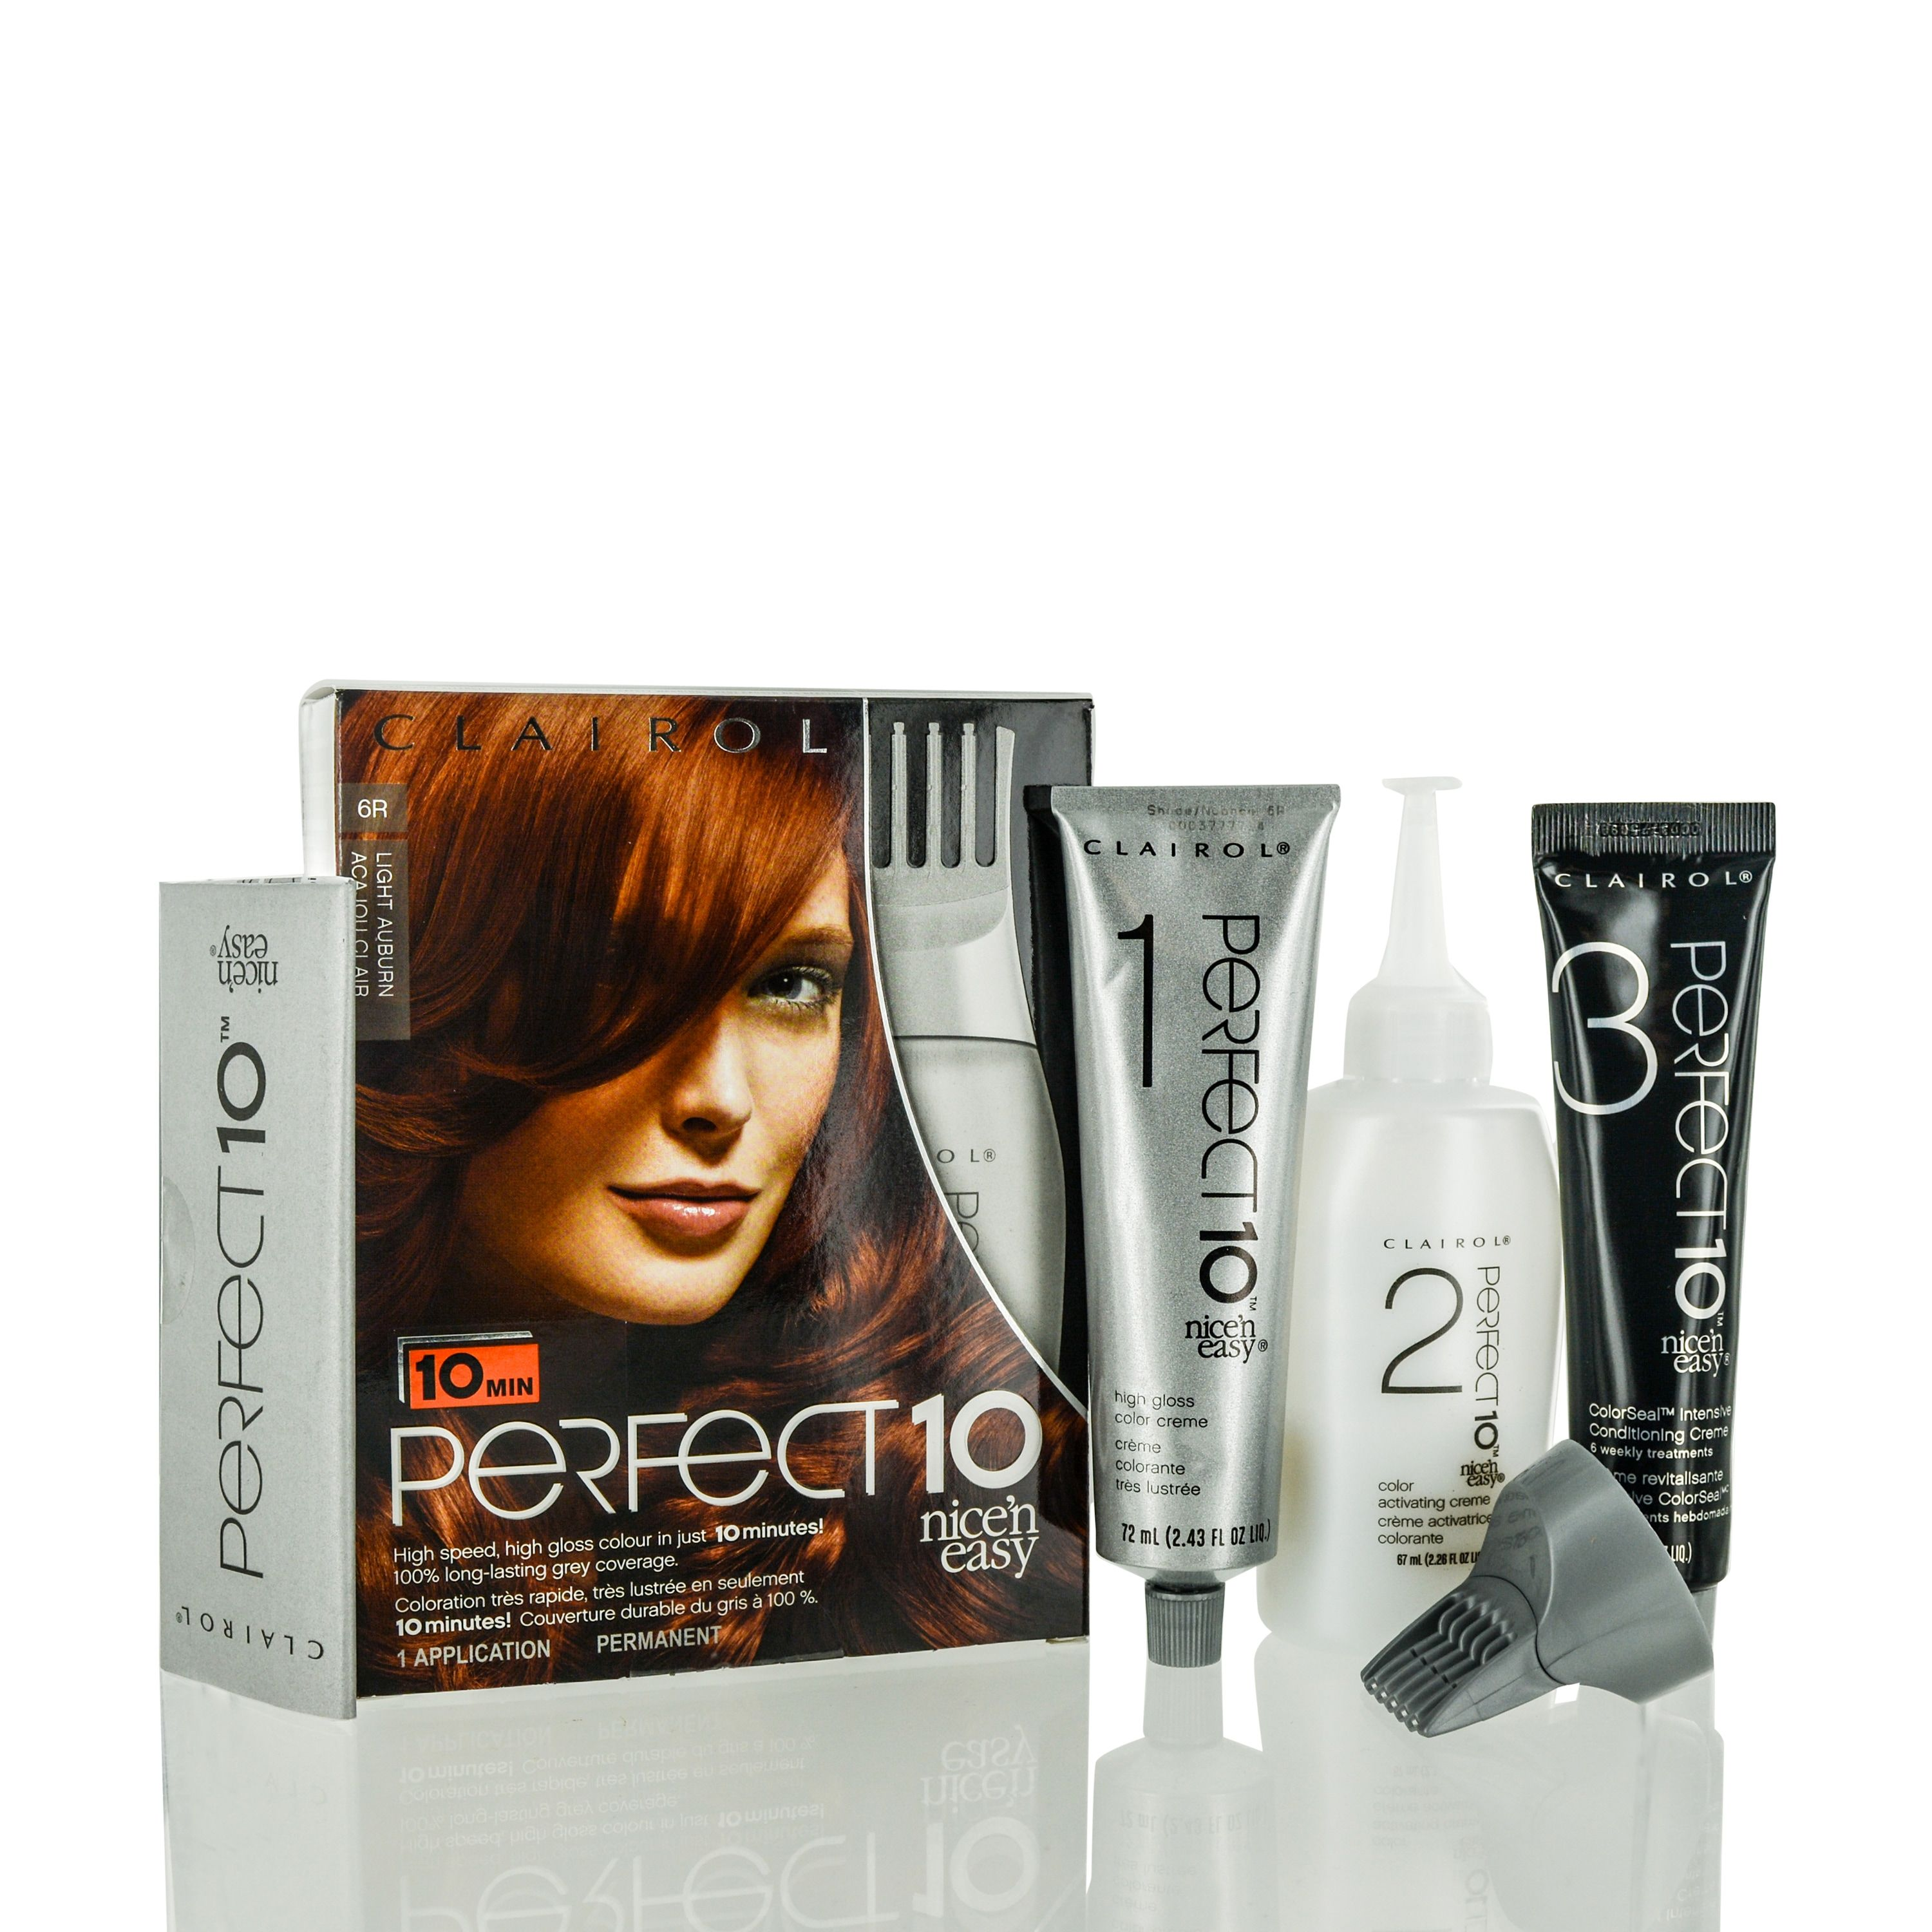 Clairol Perfect  Nice uN Easy Light Auburn Kit Red  Products